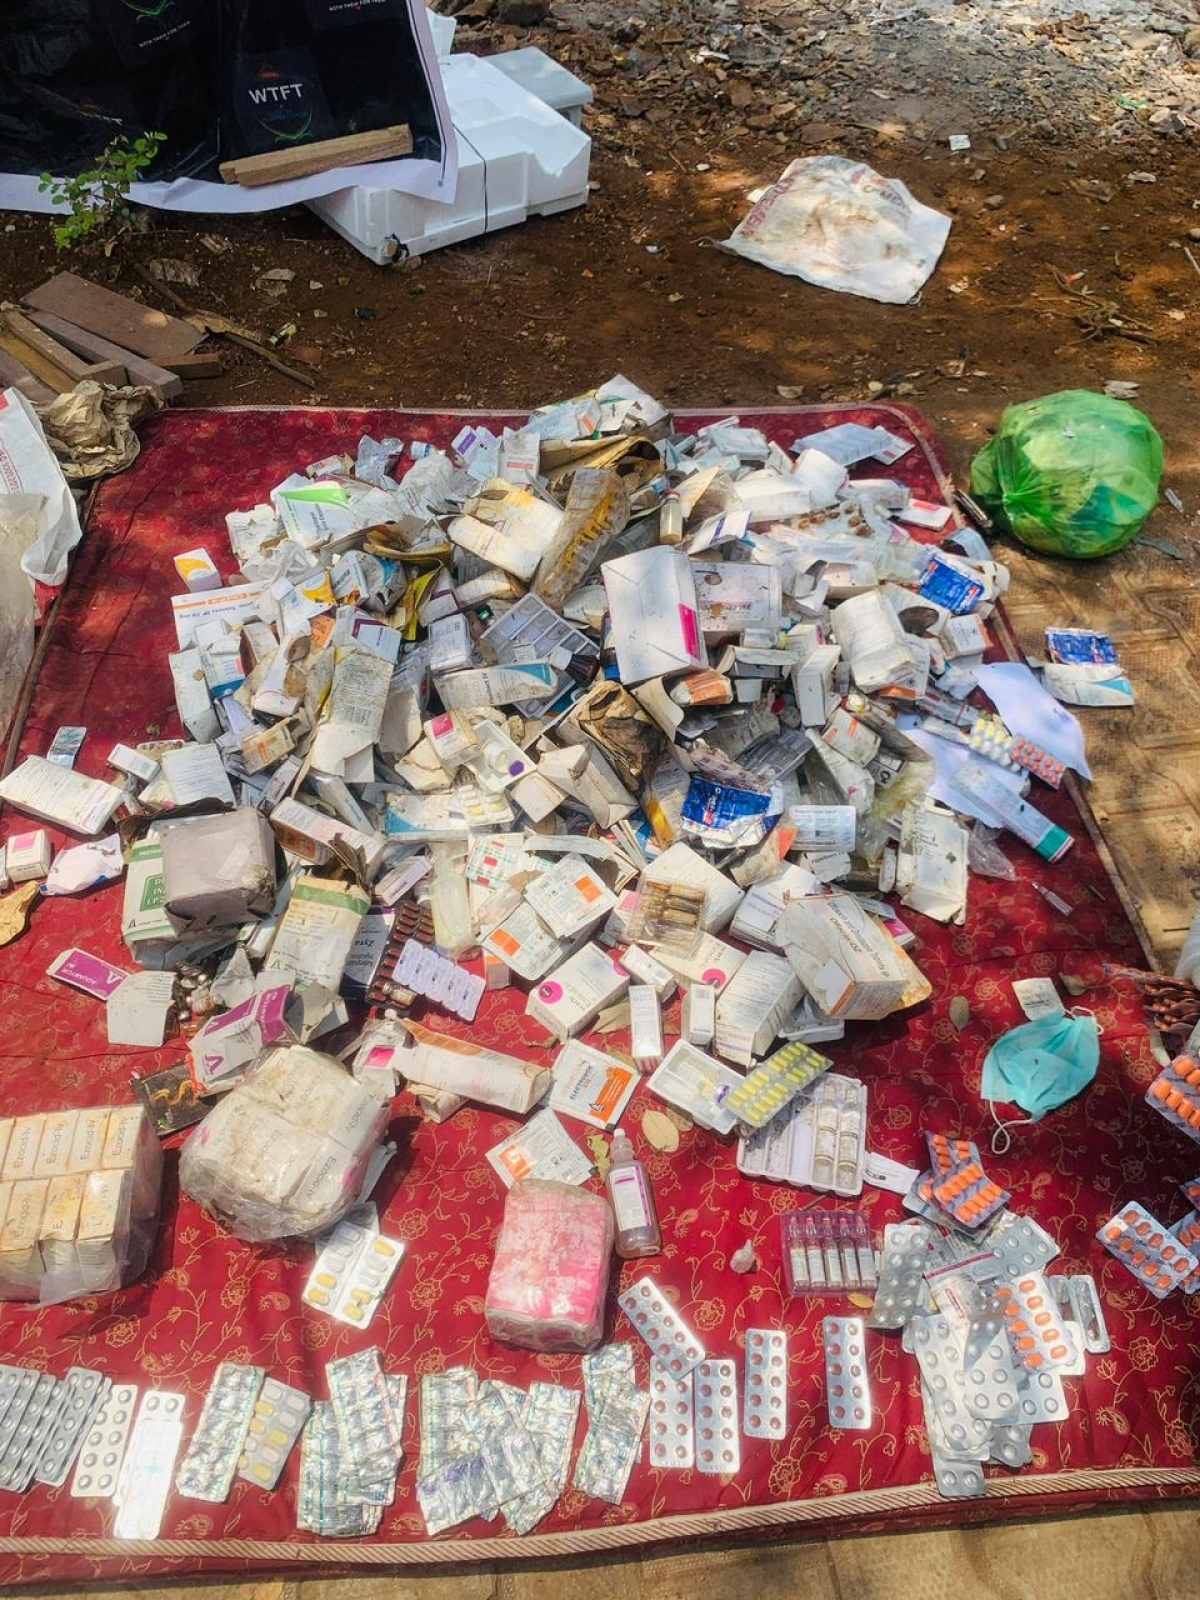 Navi Mumbai: With Them For Them, social work group, clean expired medicines from mangroves in Airoli; see pics